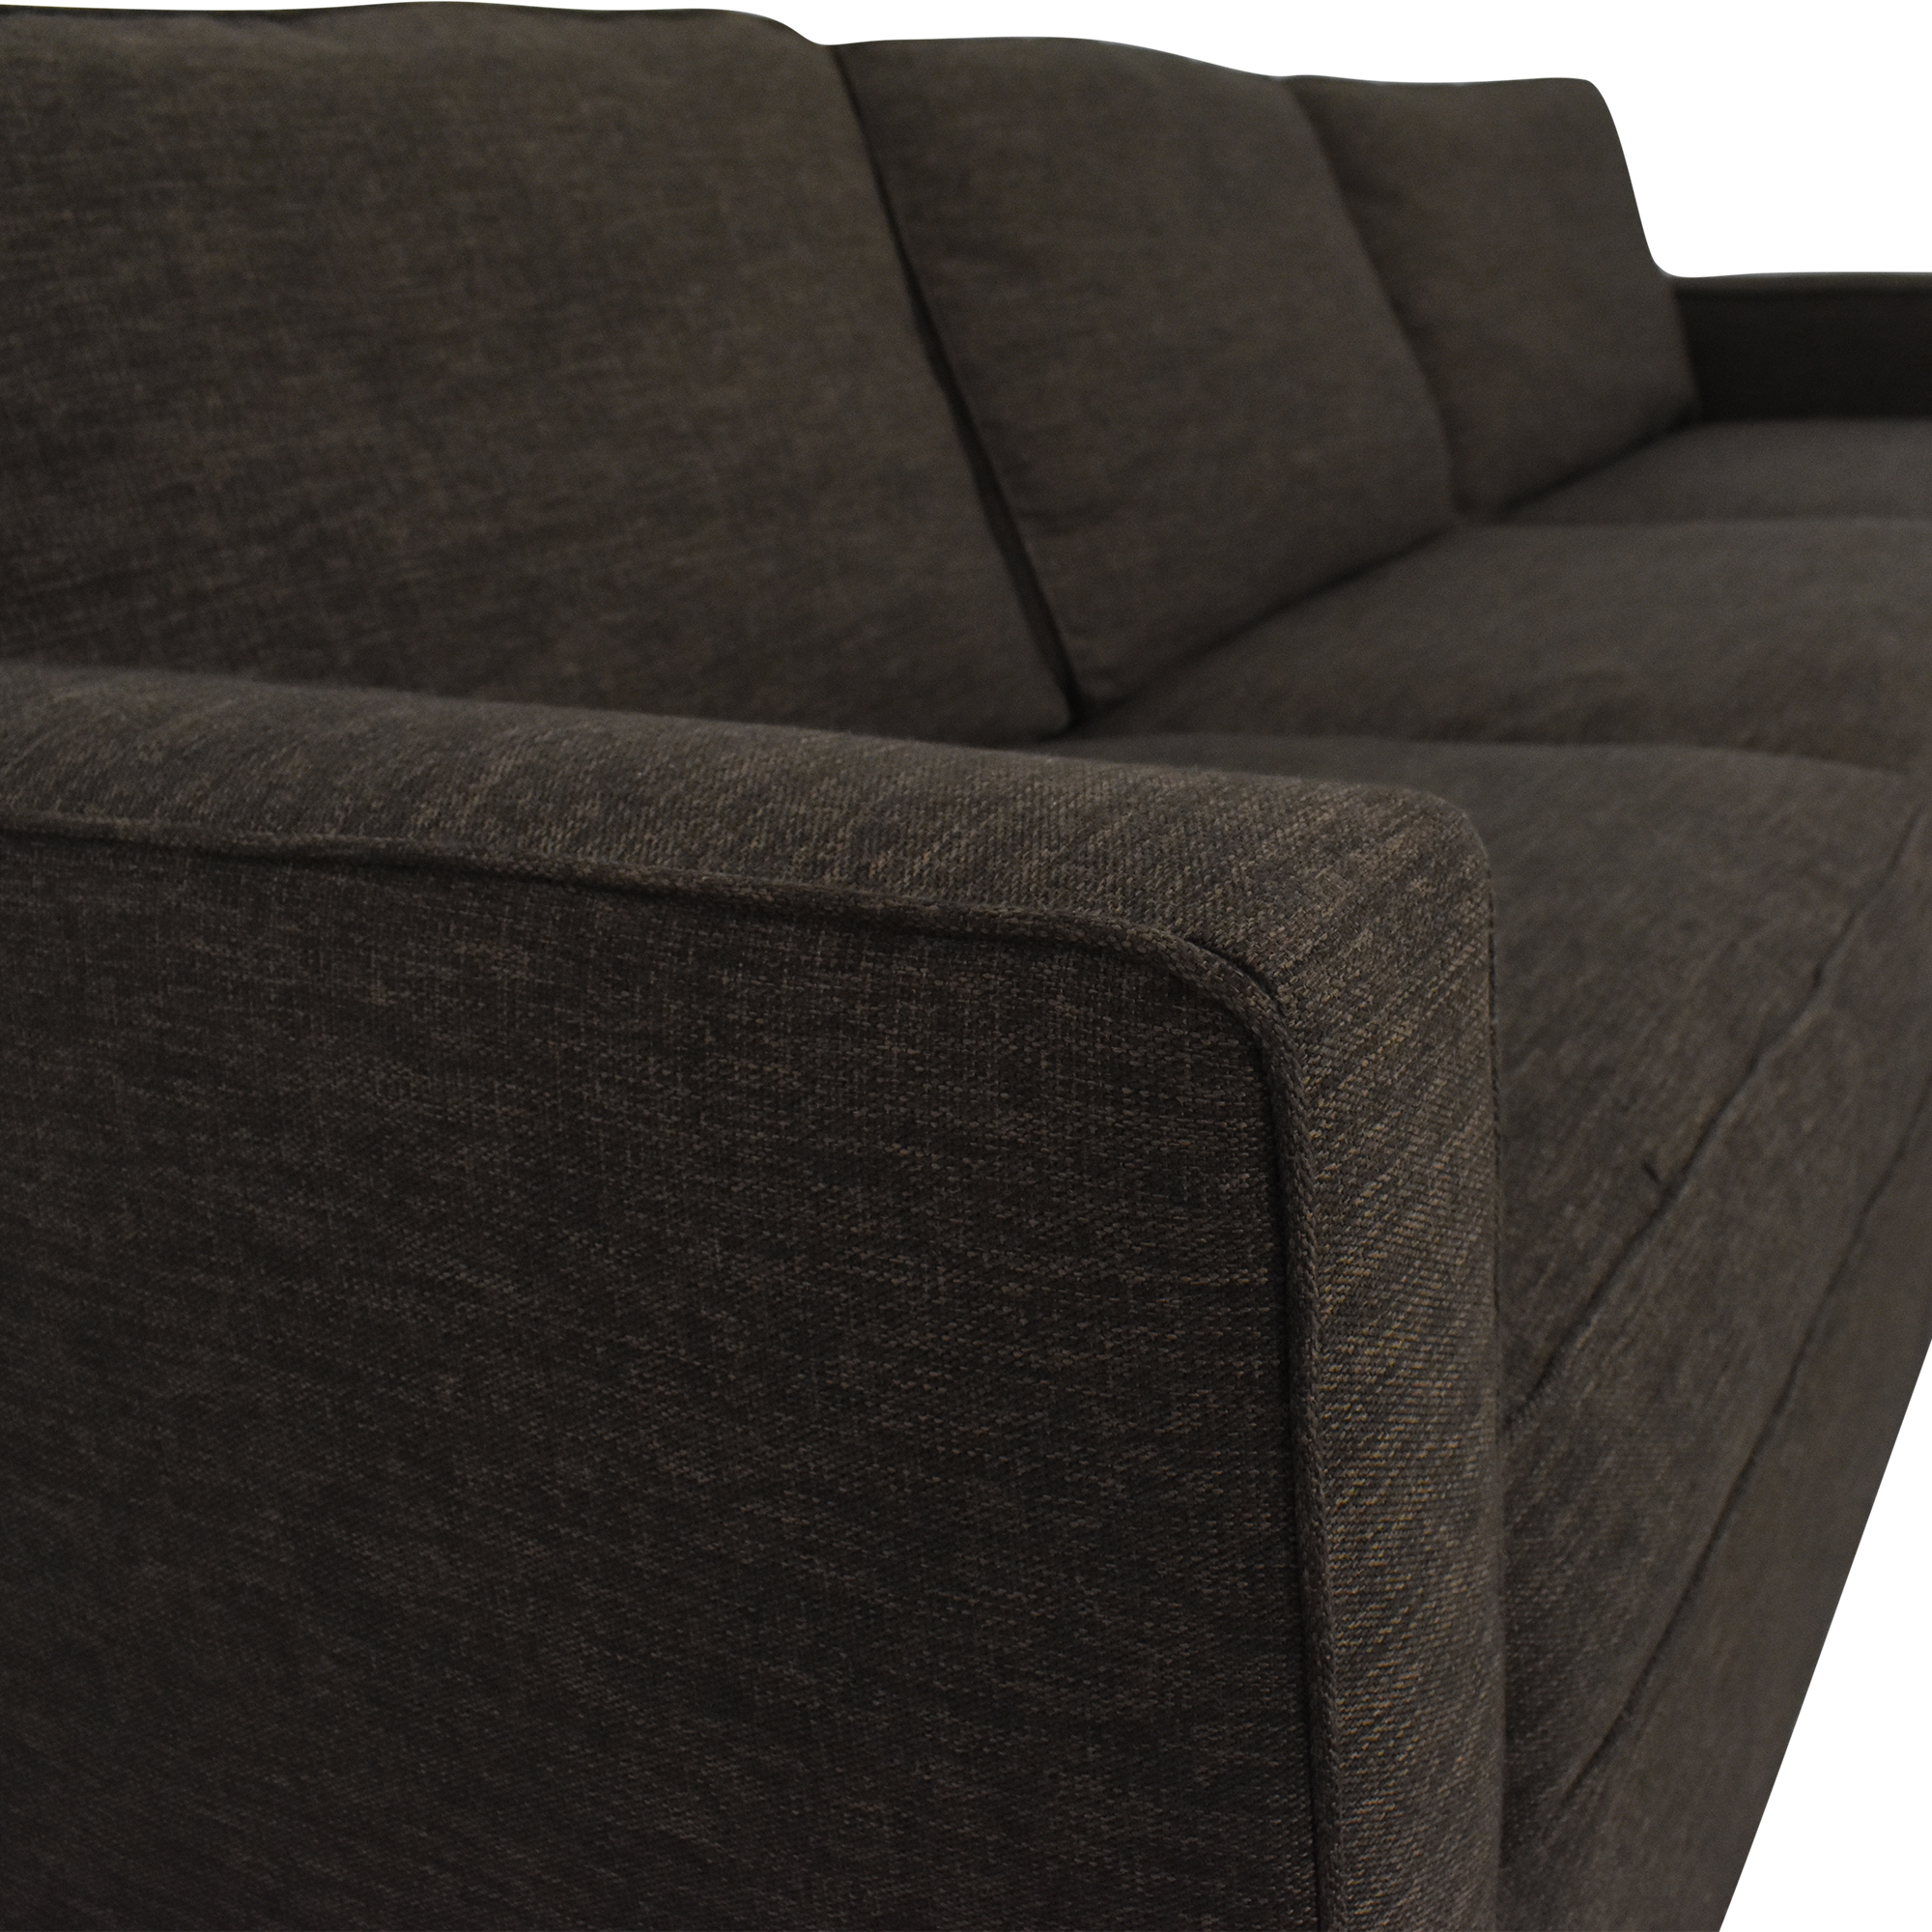 Crate & Barrel Crate & Barrel Sectional Sofa with Chaise second hand